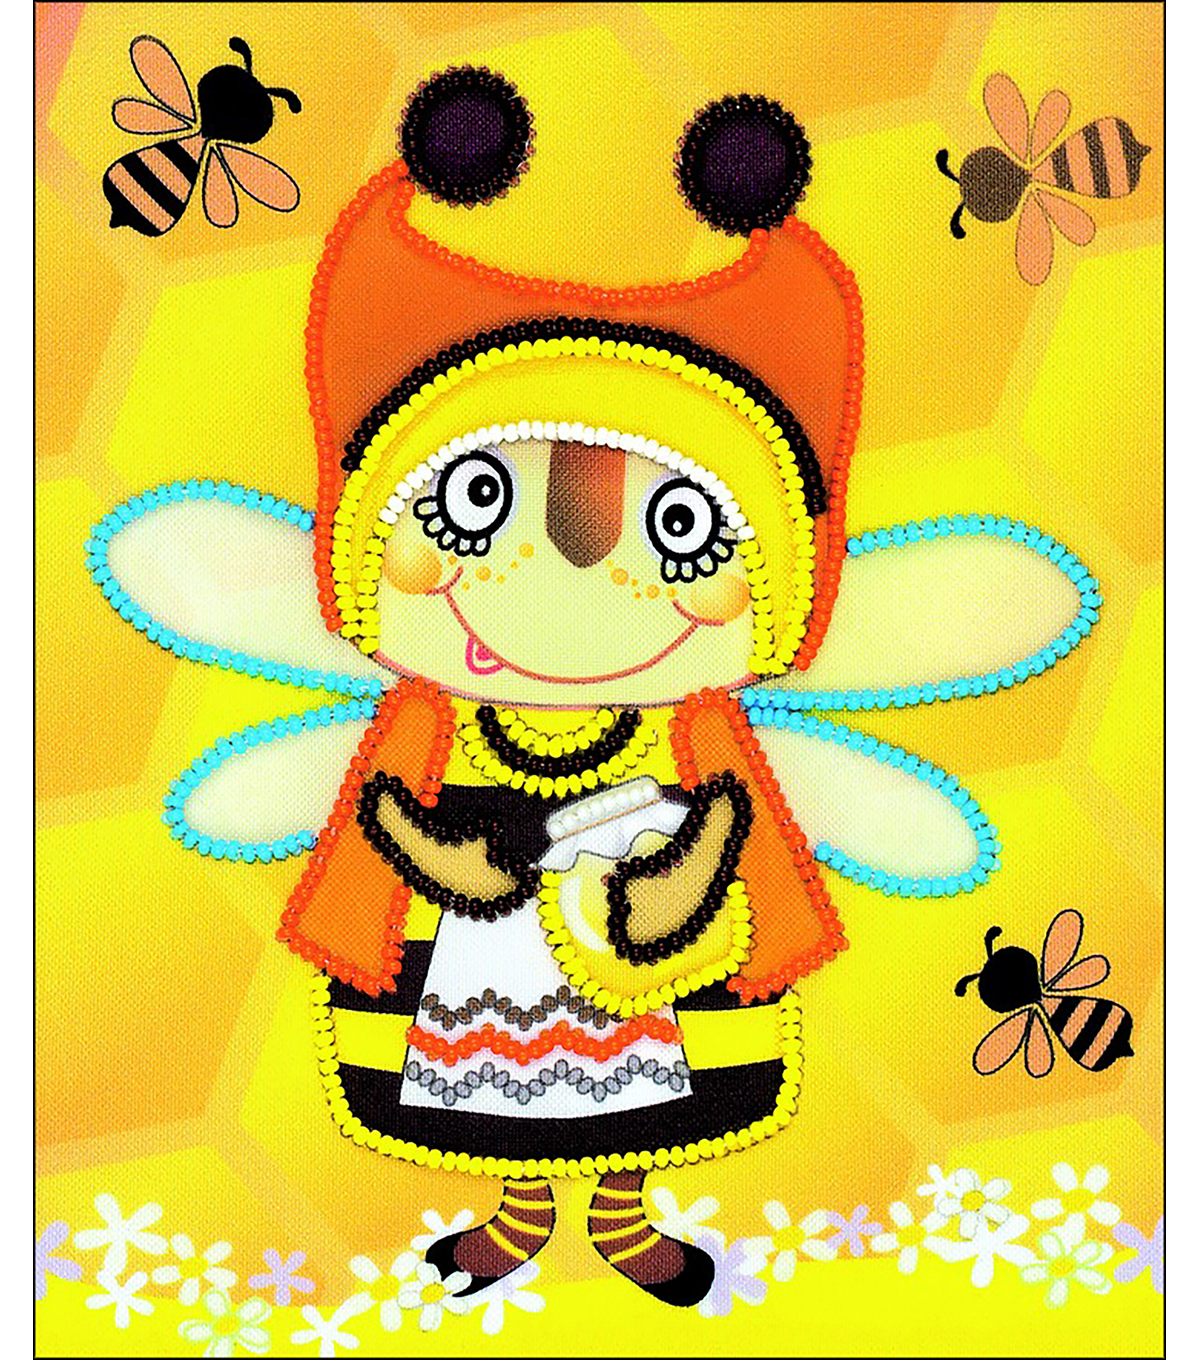 RIOLIS Create it Yourself 6\u0027\u0027x7\u0027\u0027 Beaded Embroidery Kit-Granny Bee